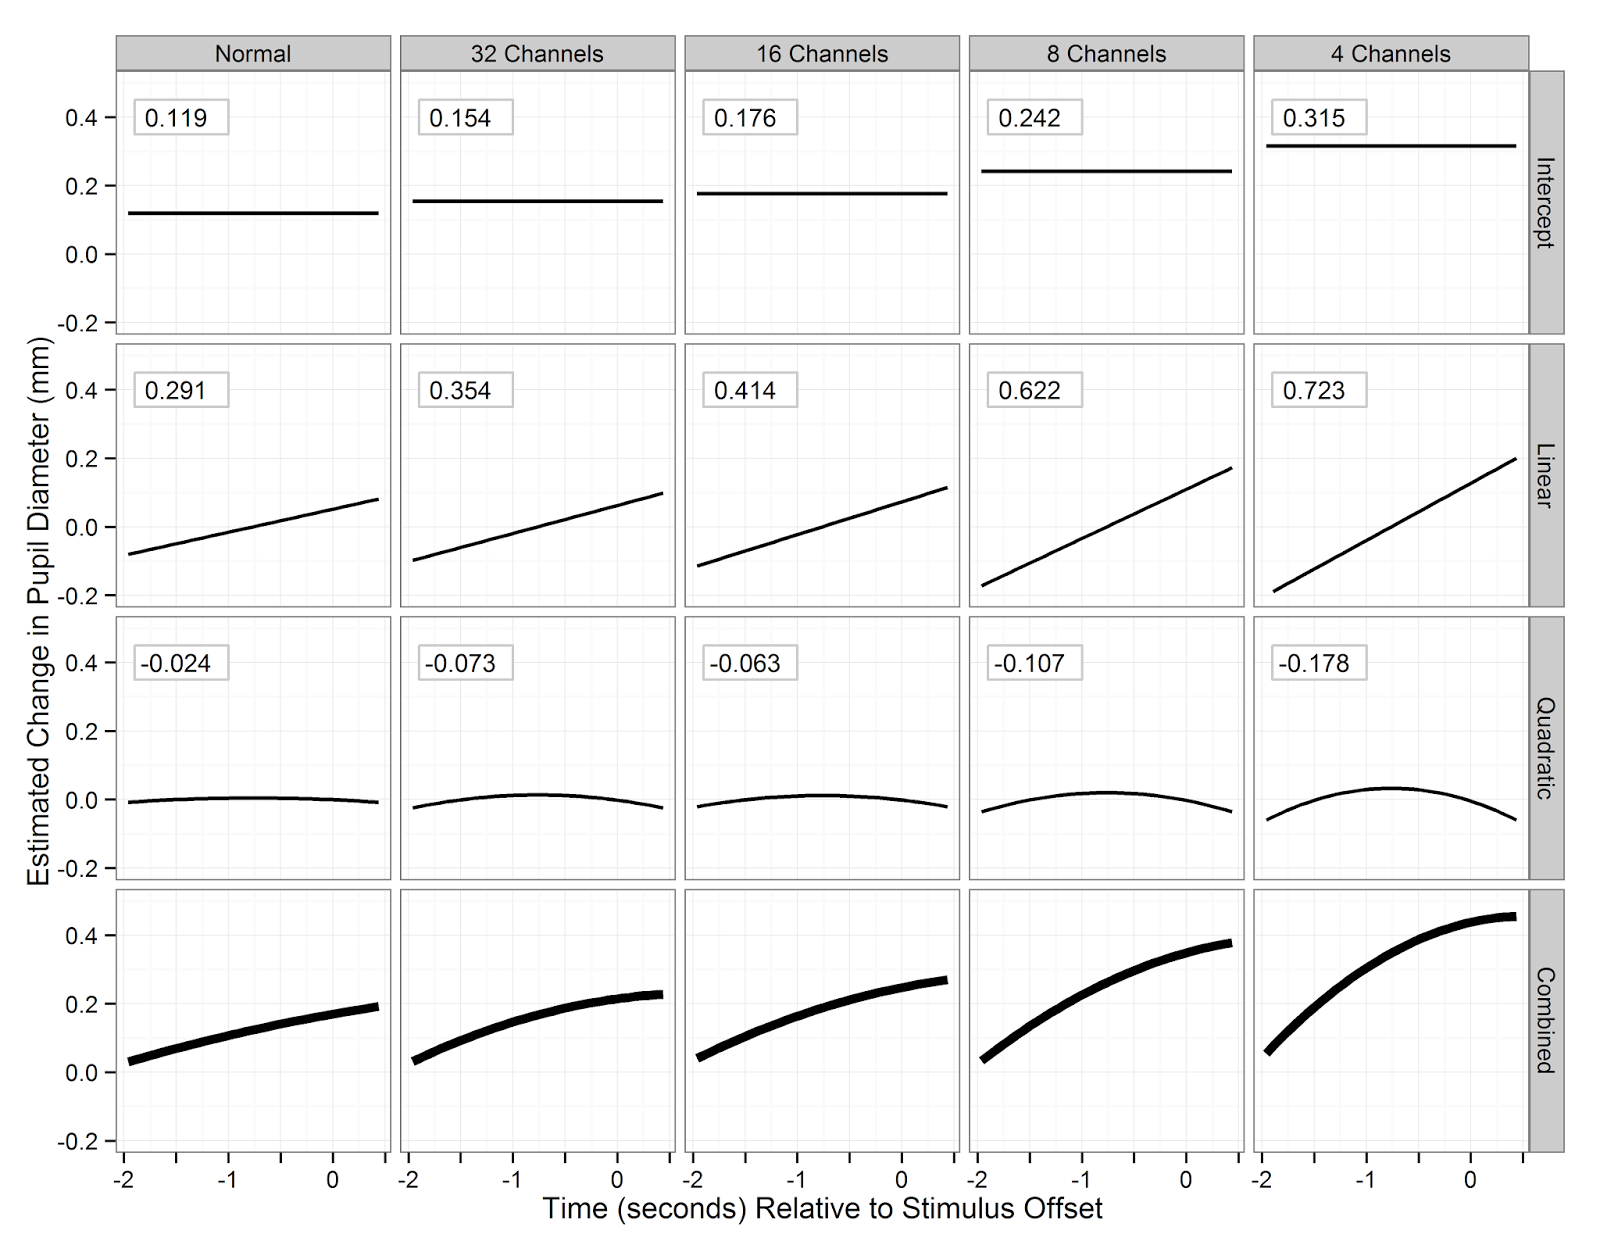 The Objective Of This Plot Is To Let The Reader Directlypare The Ponents Of Each Condition's Curve Side By Side The Model Coefficients  For Each